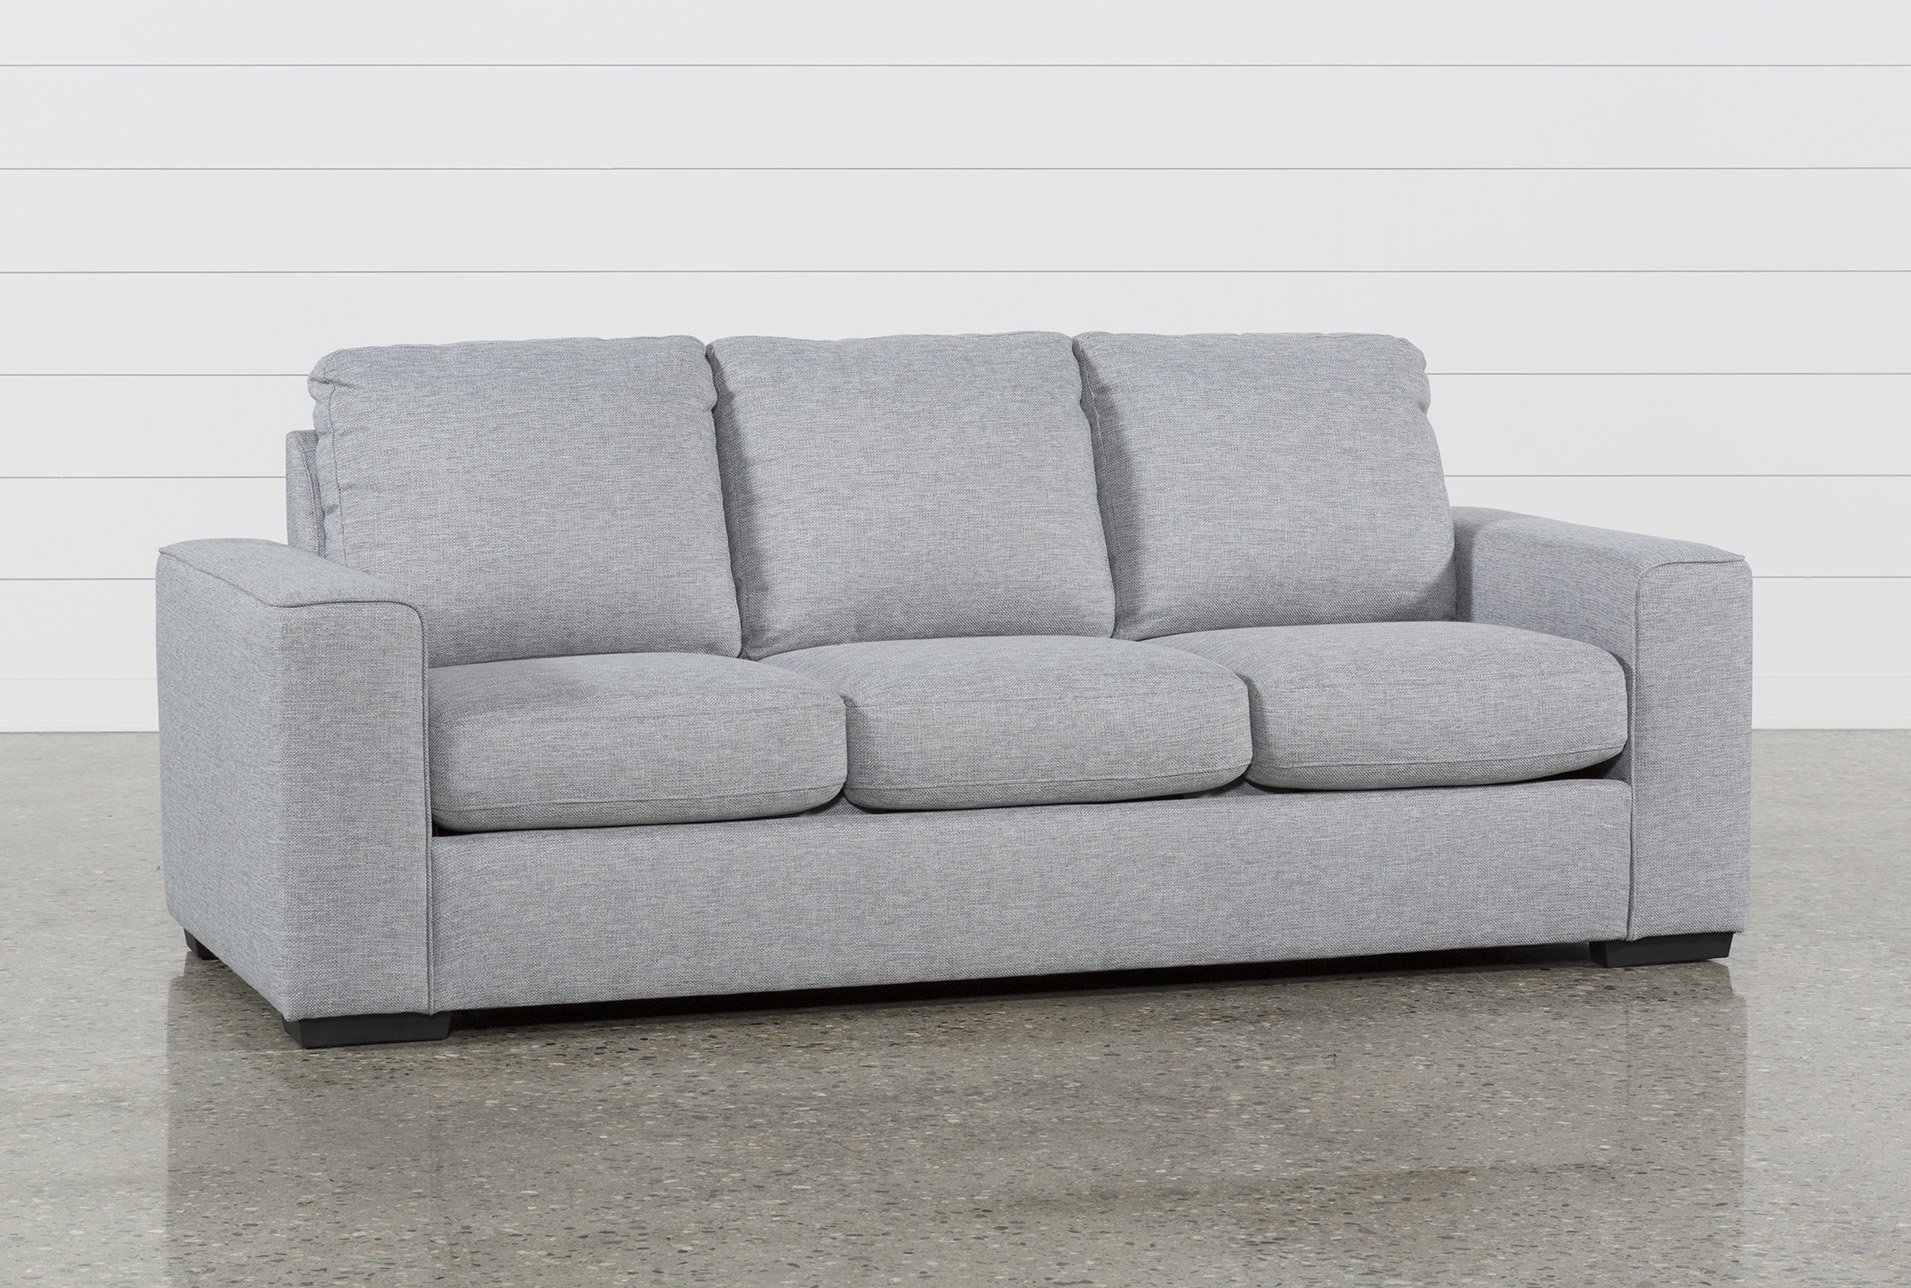 Lucy Grey Sofa (Qty: 1) has been successfully added to your Cart.